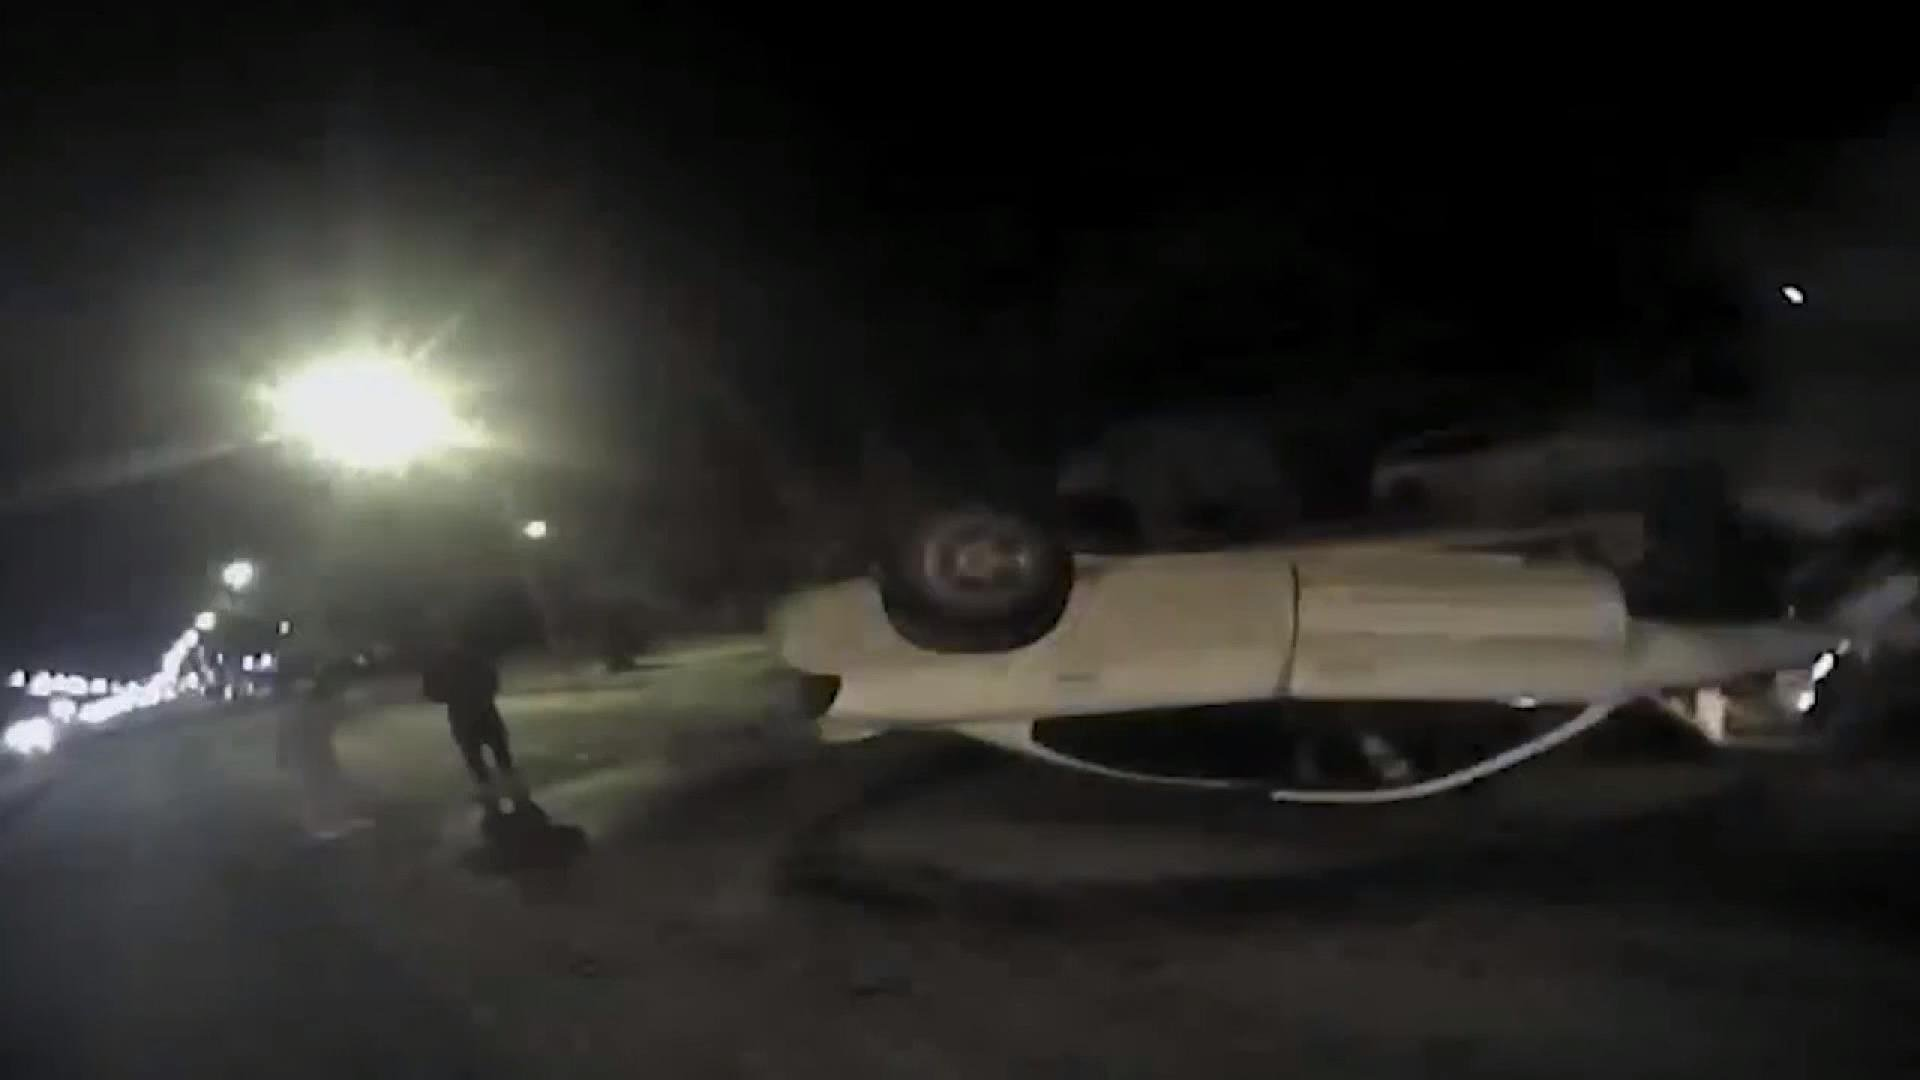 Dramatic police video captures auto crash and rescue from burning vehicle